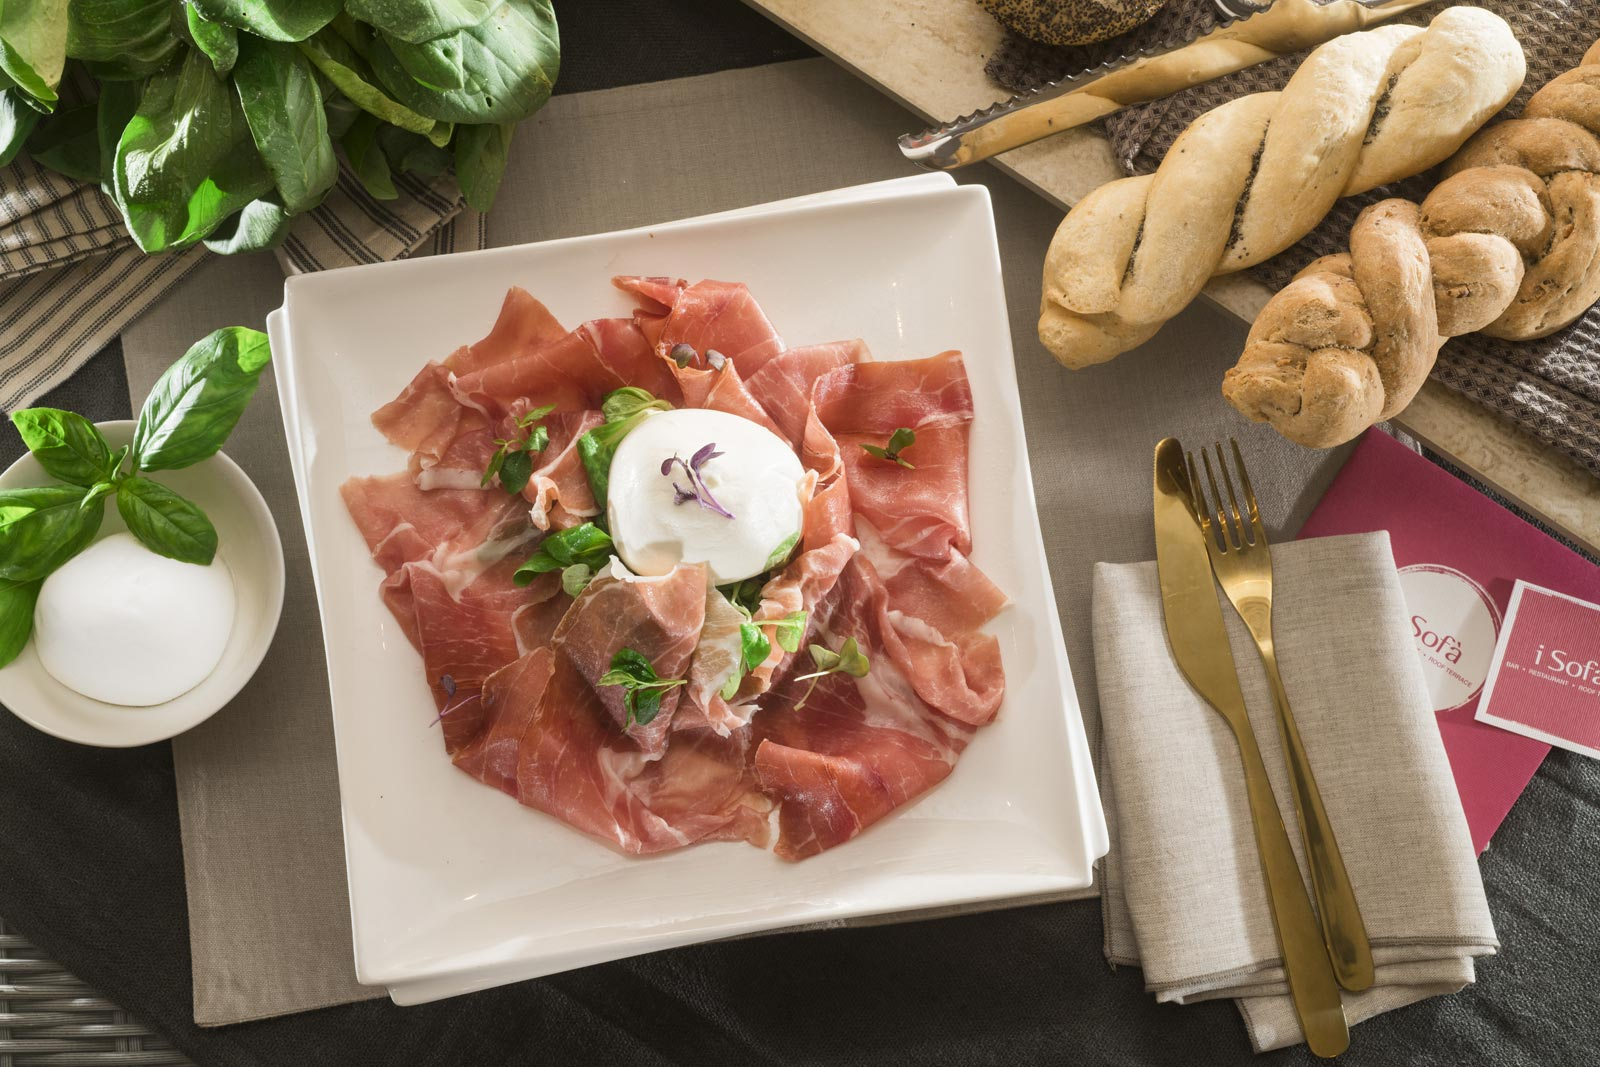 Parma ham and buffalo mozzarella